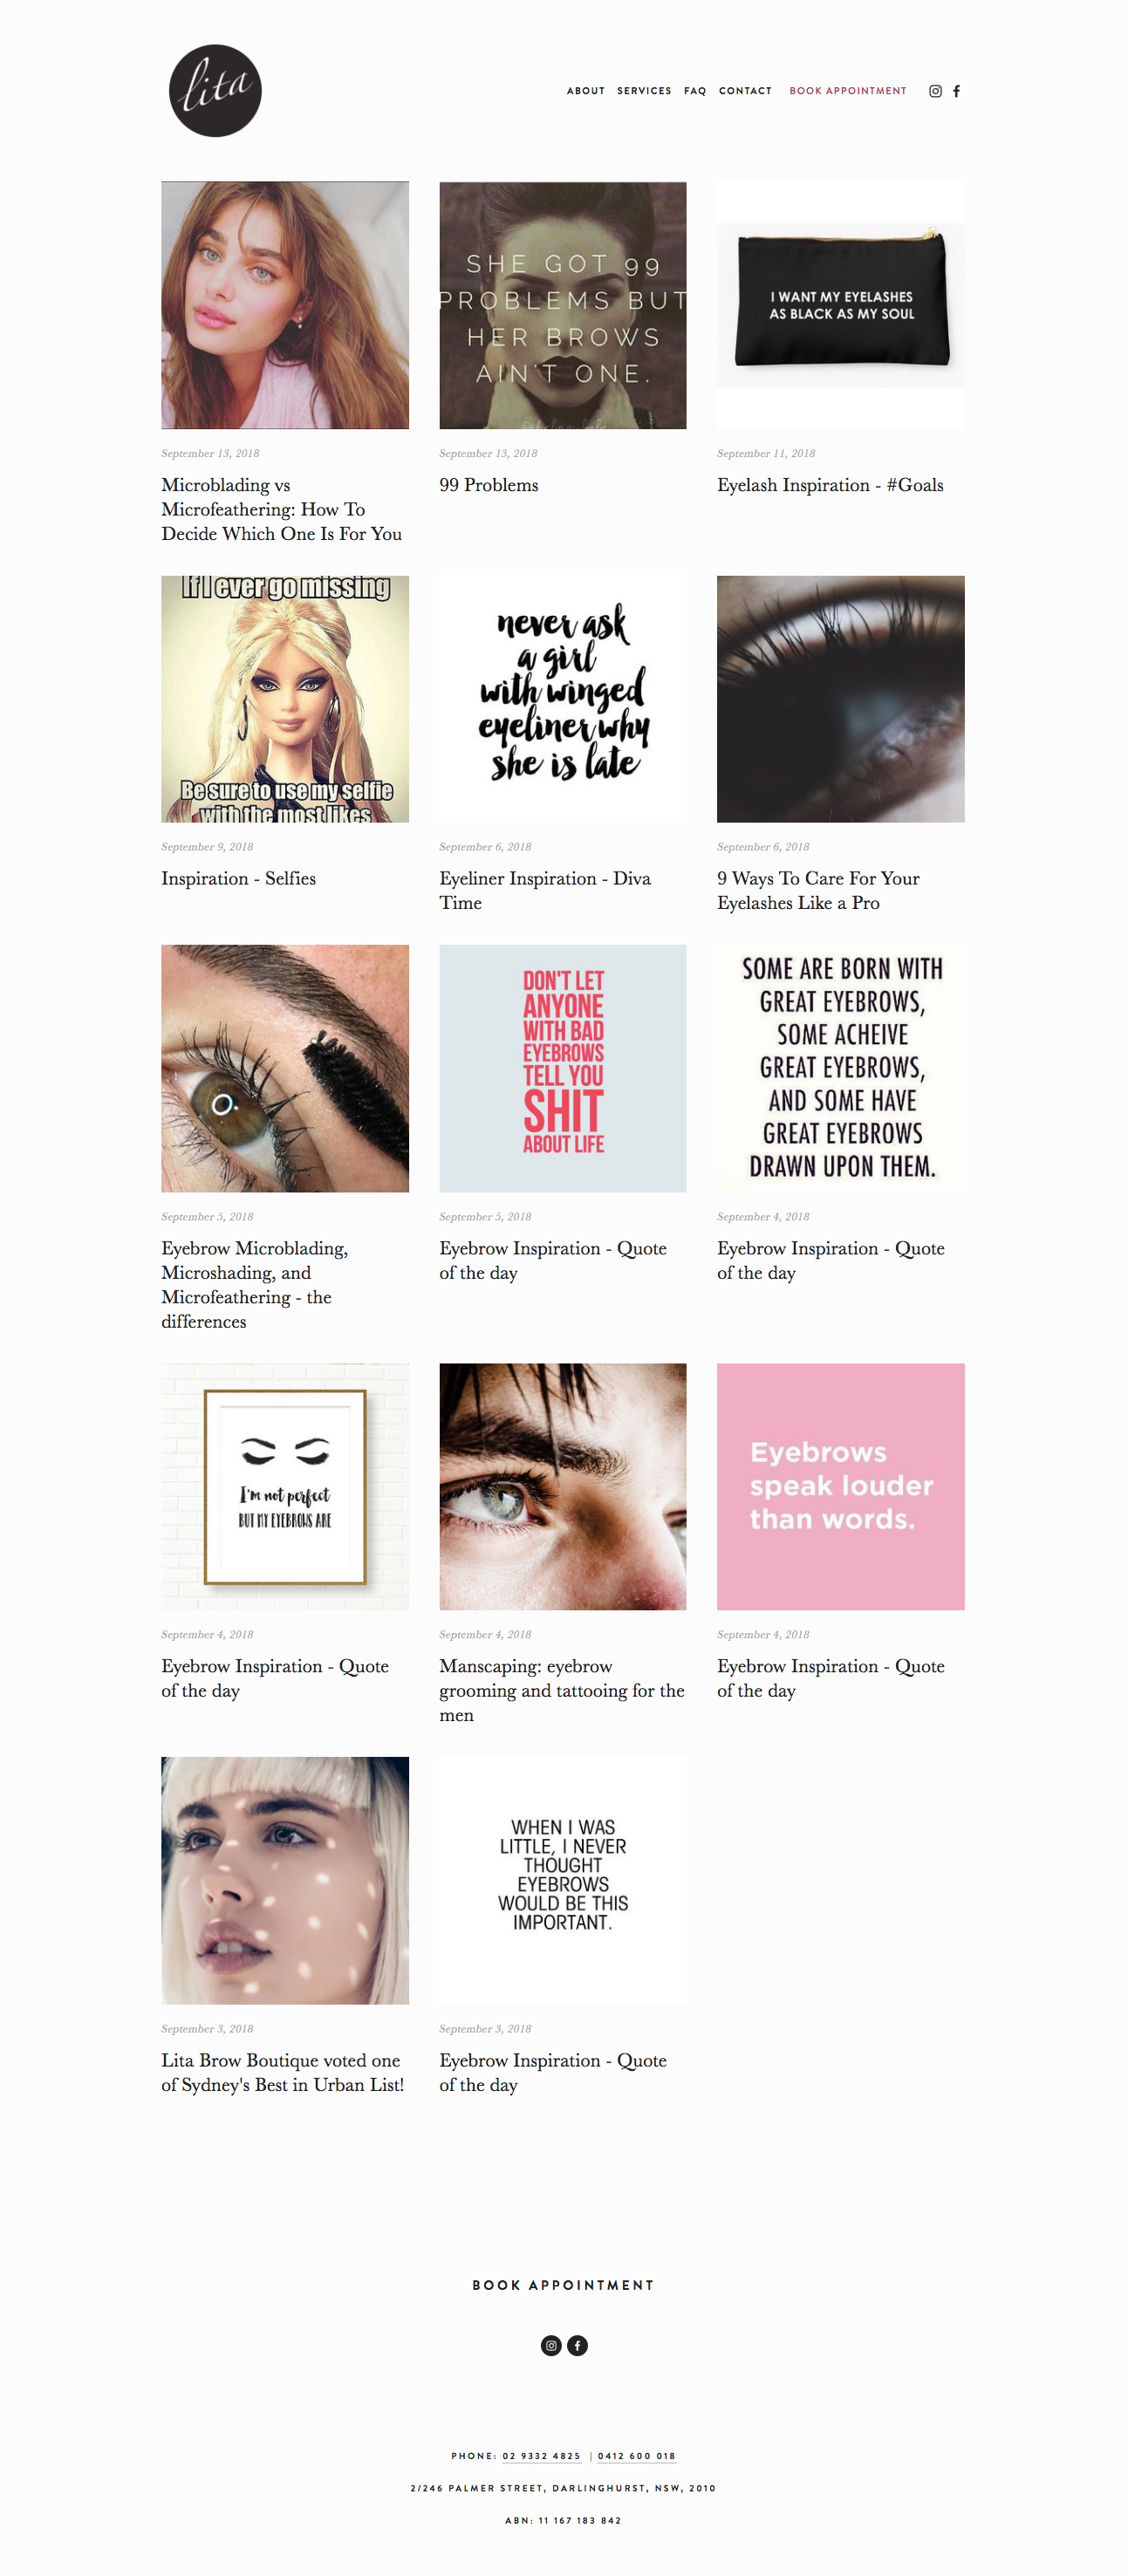 Weekly blog strategy for Lita Brow Boutique - Sydney's best eyebrow and eyelash cosmetic tattooist